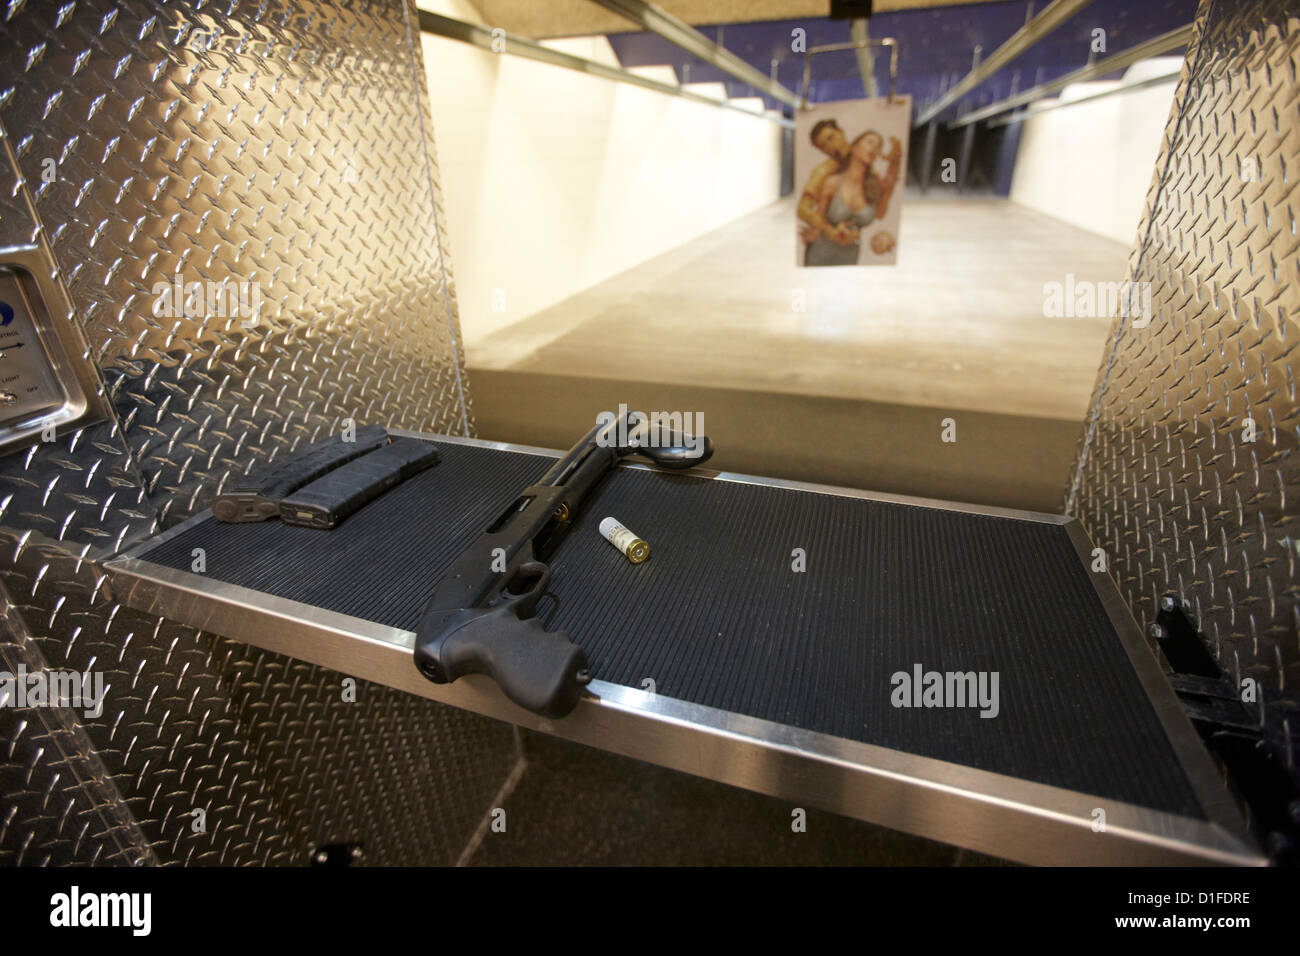 12 gauge assault tactical shotgun at a gun range in las vegas nevada usa - Stock Image